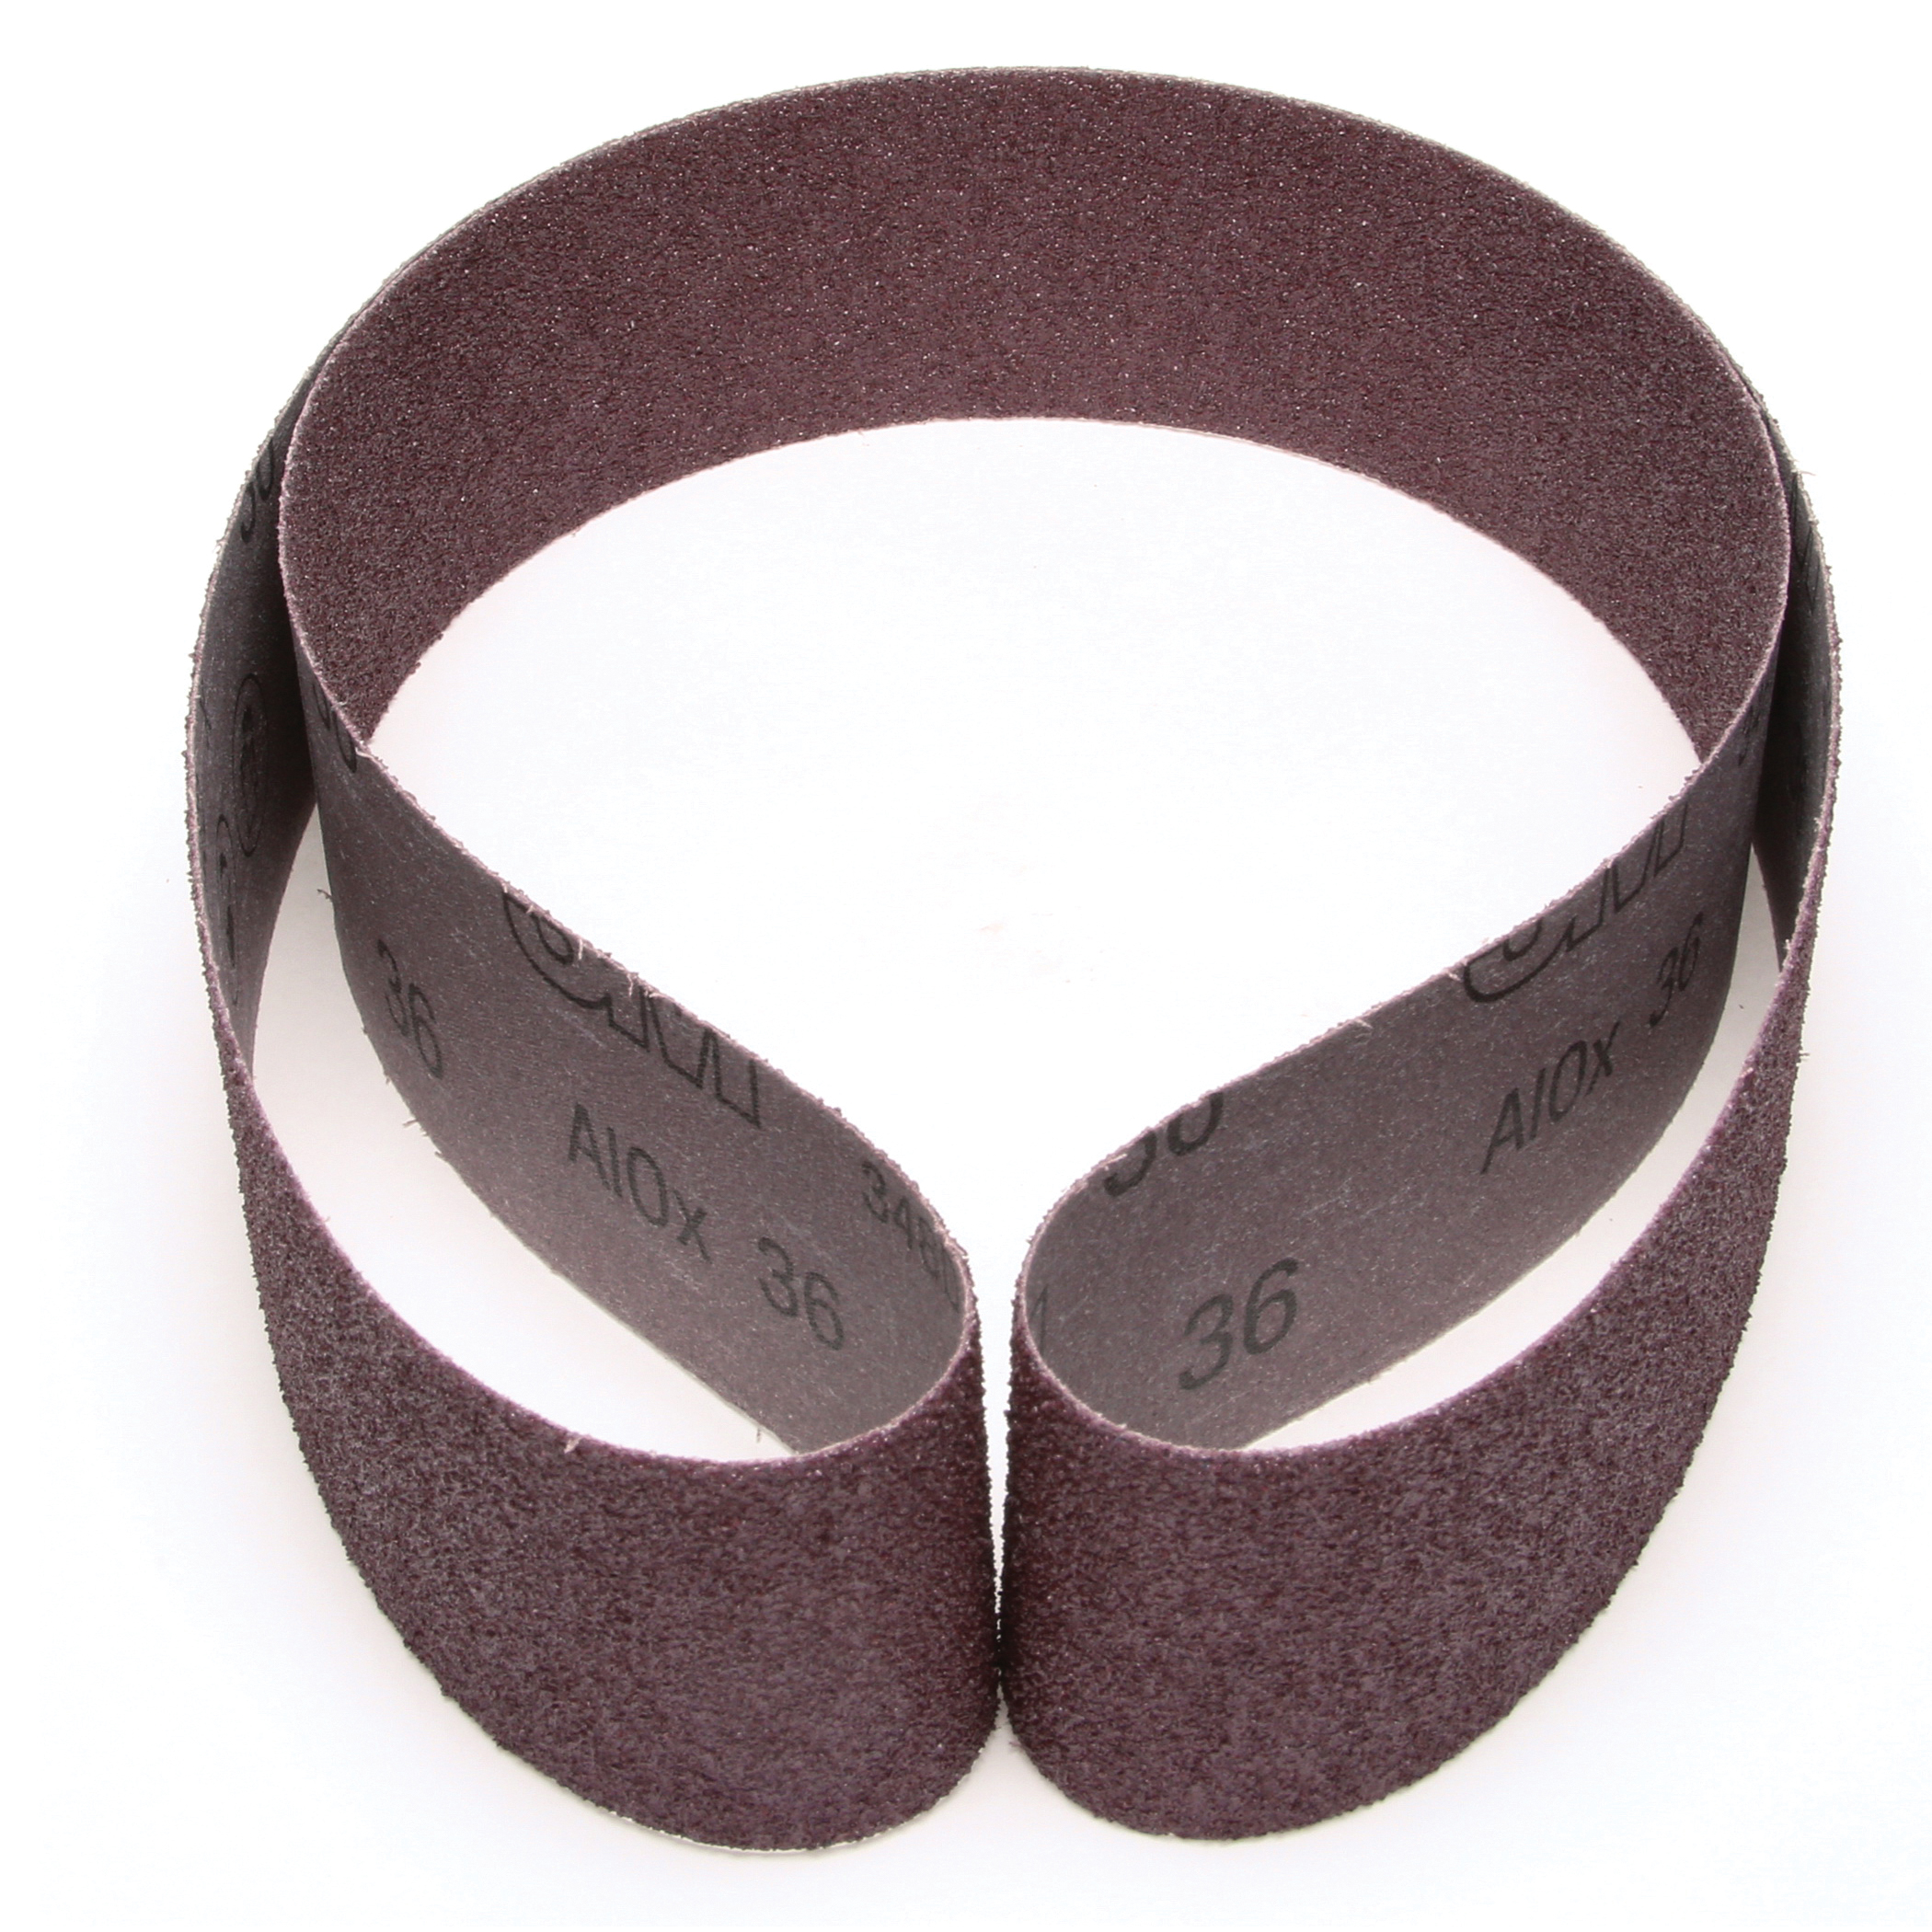 3M™ 051144-26408 Narrow Coated Abrasive Belt, 2-1/2 in W x 60 in L, 36 Grit, Very Coarse Grade, Aluminum Oxide Abrasive, Cloth Backing